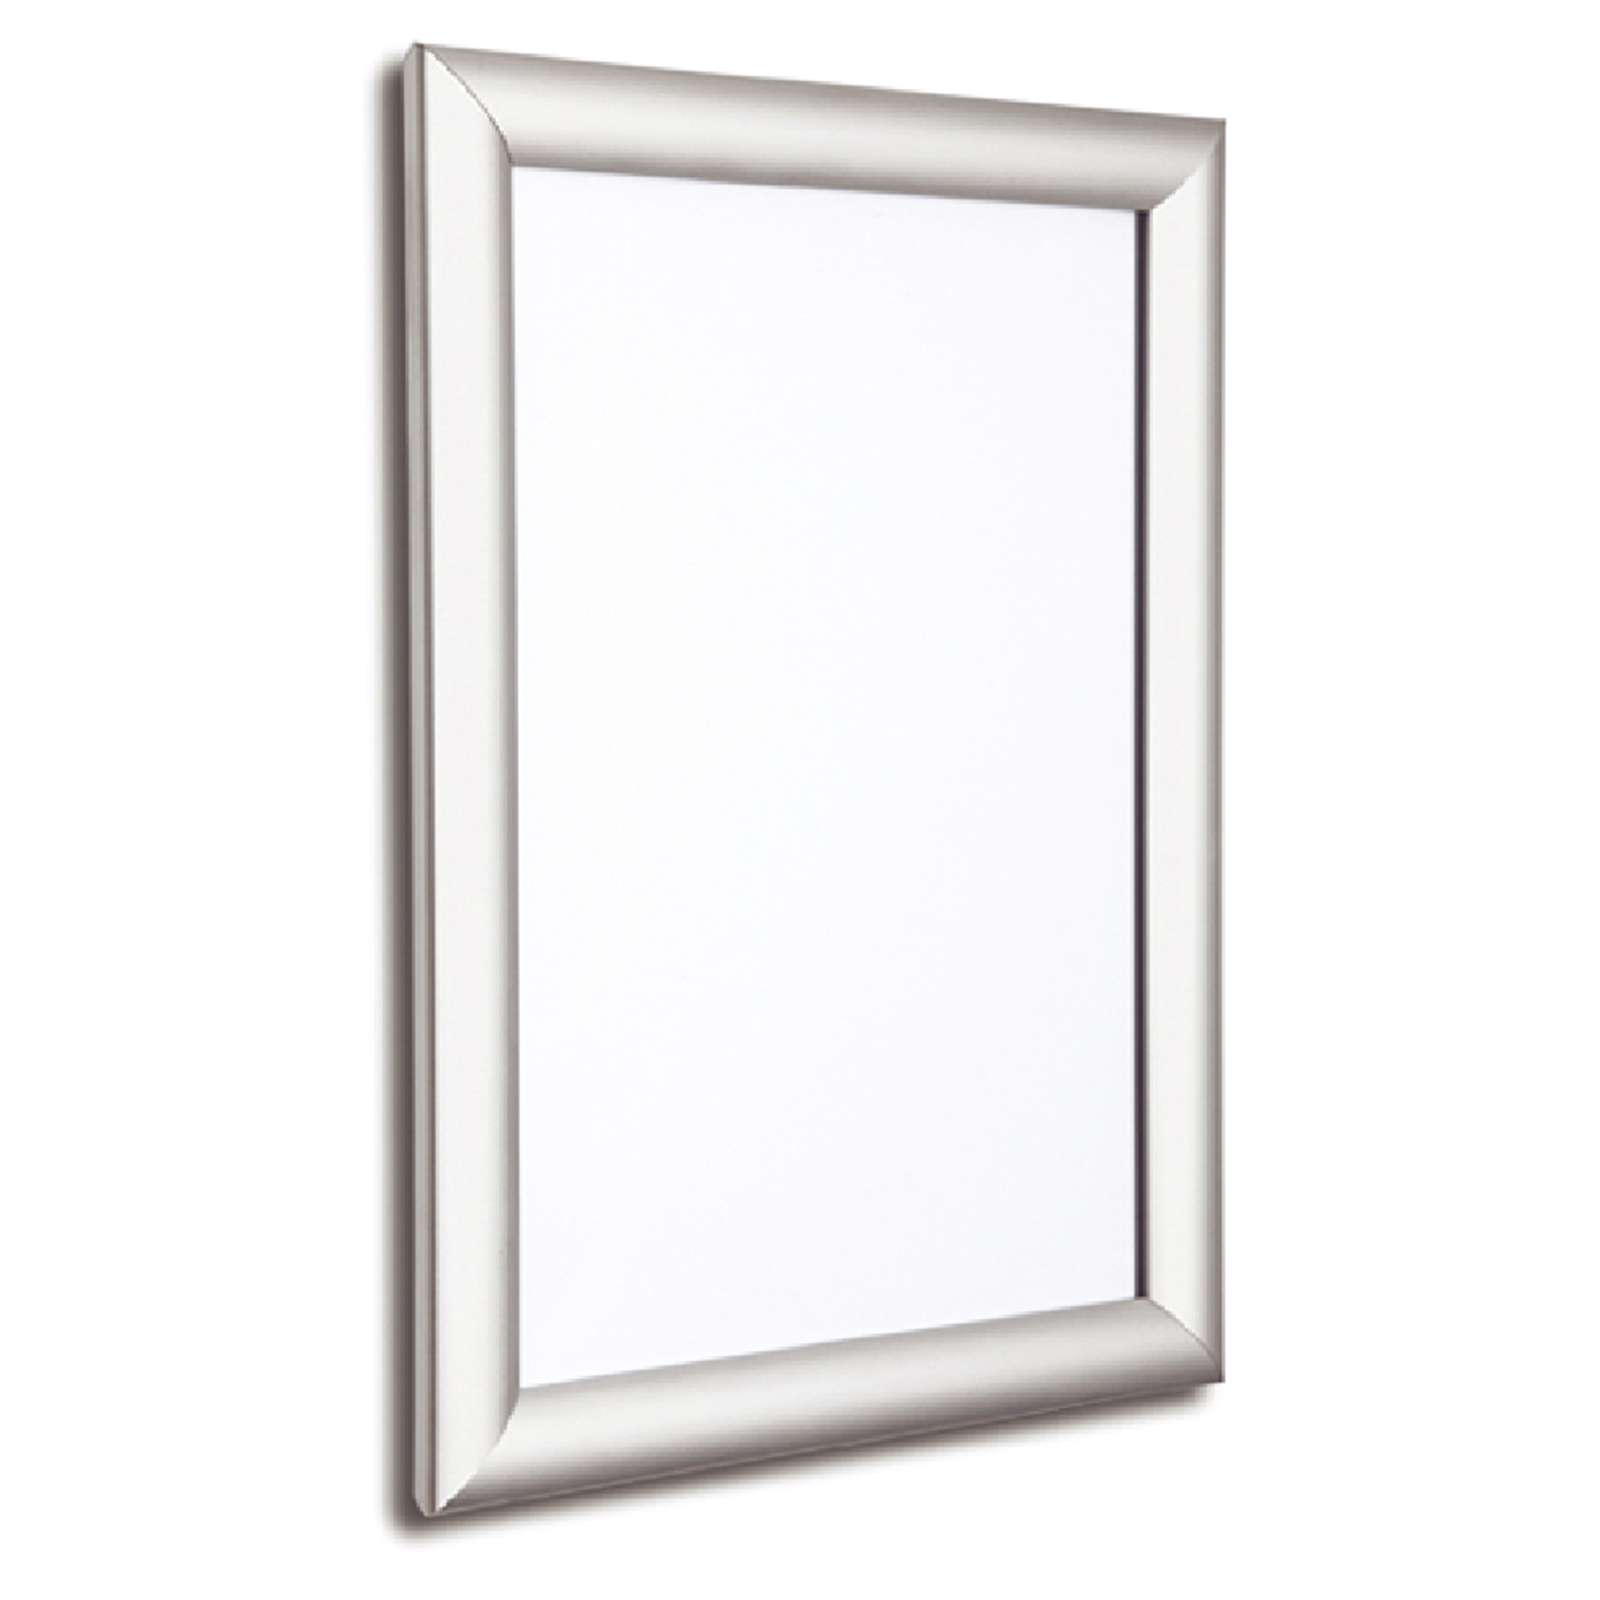 A3 Satin Silver - 25mm Poster Display Snap Frame